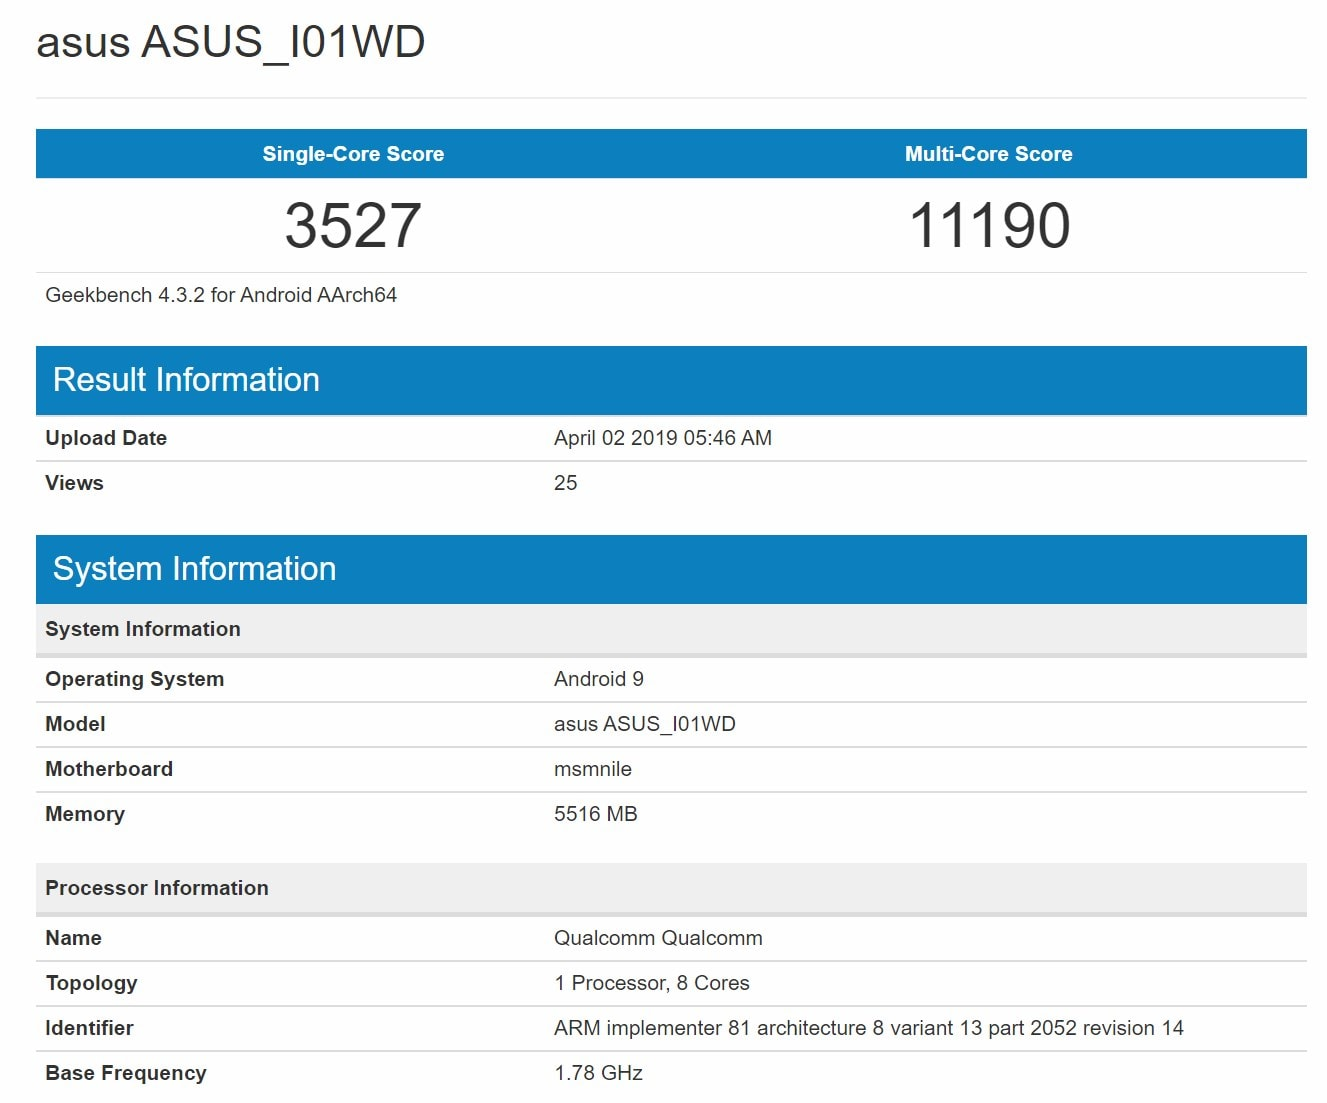 asus_ASUS_I01WD_-_Geekbench_Browser_-_Google_Chrom-11_36_37